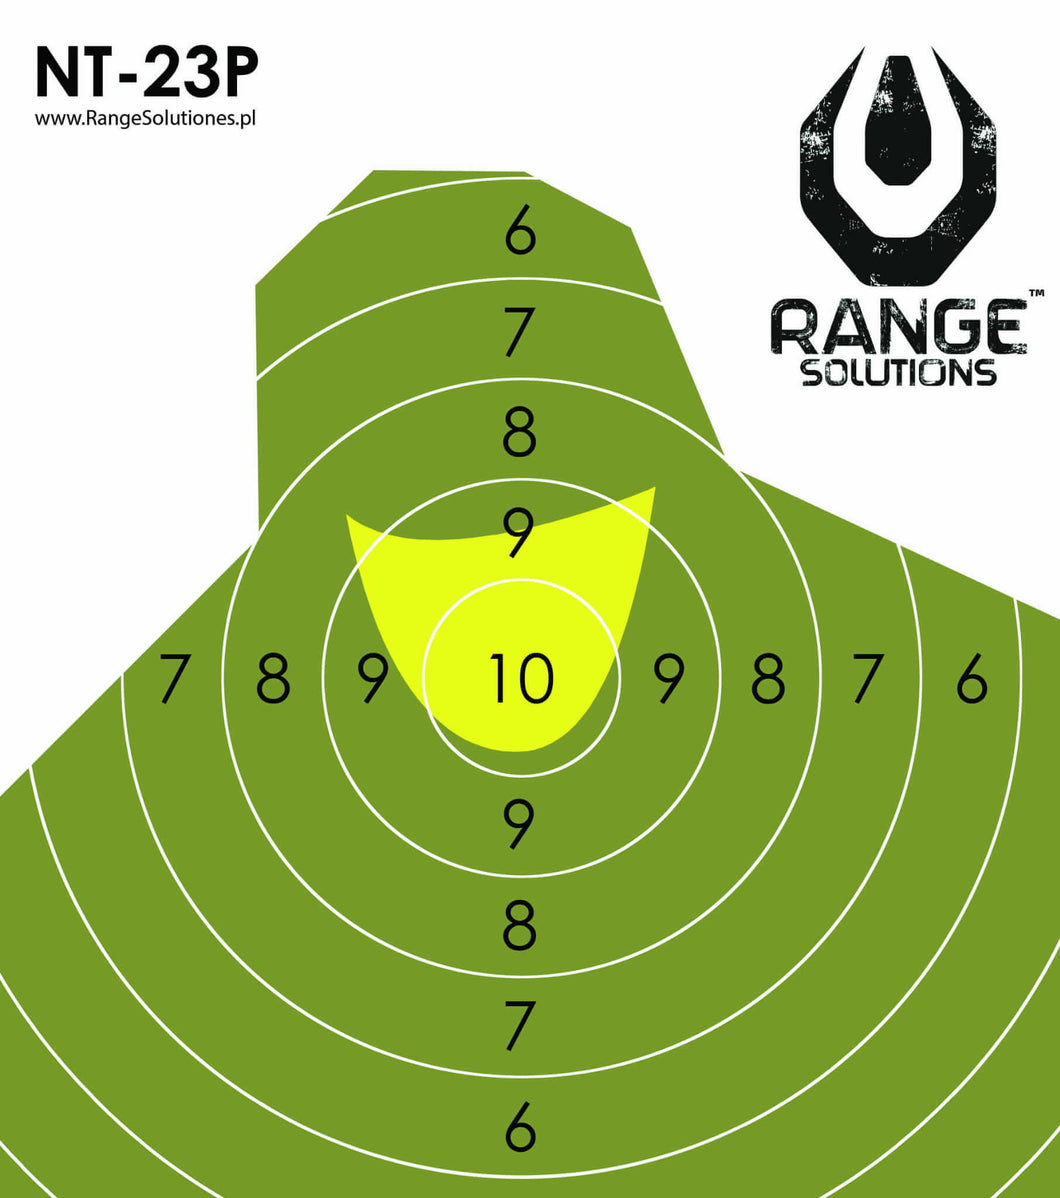 Range Solutions NT-23P-MINI targets, military figure green targets with yellow centre , mini version